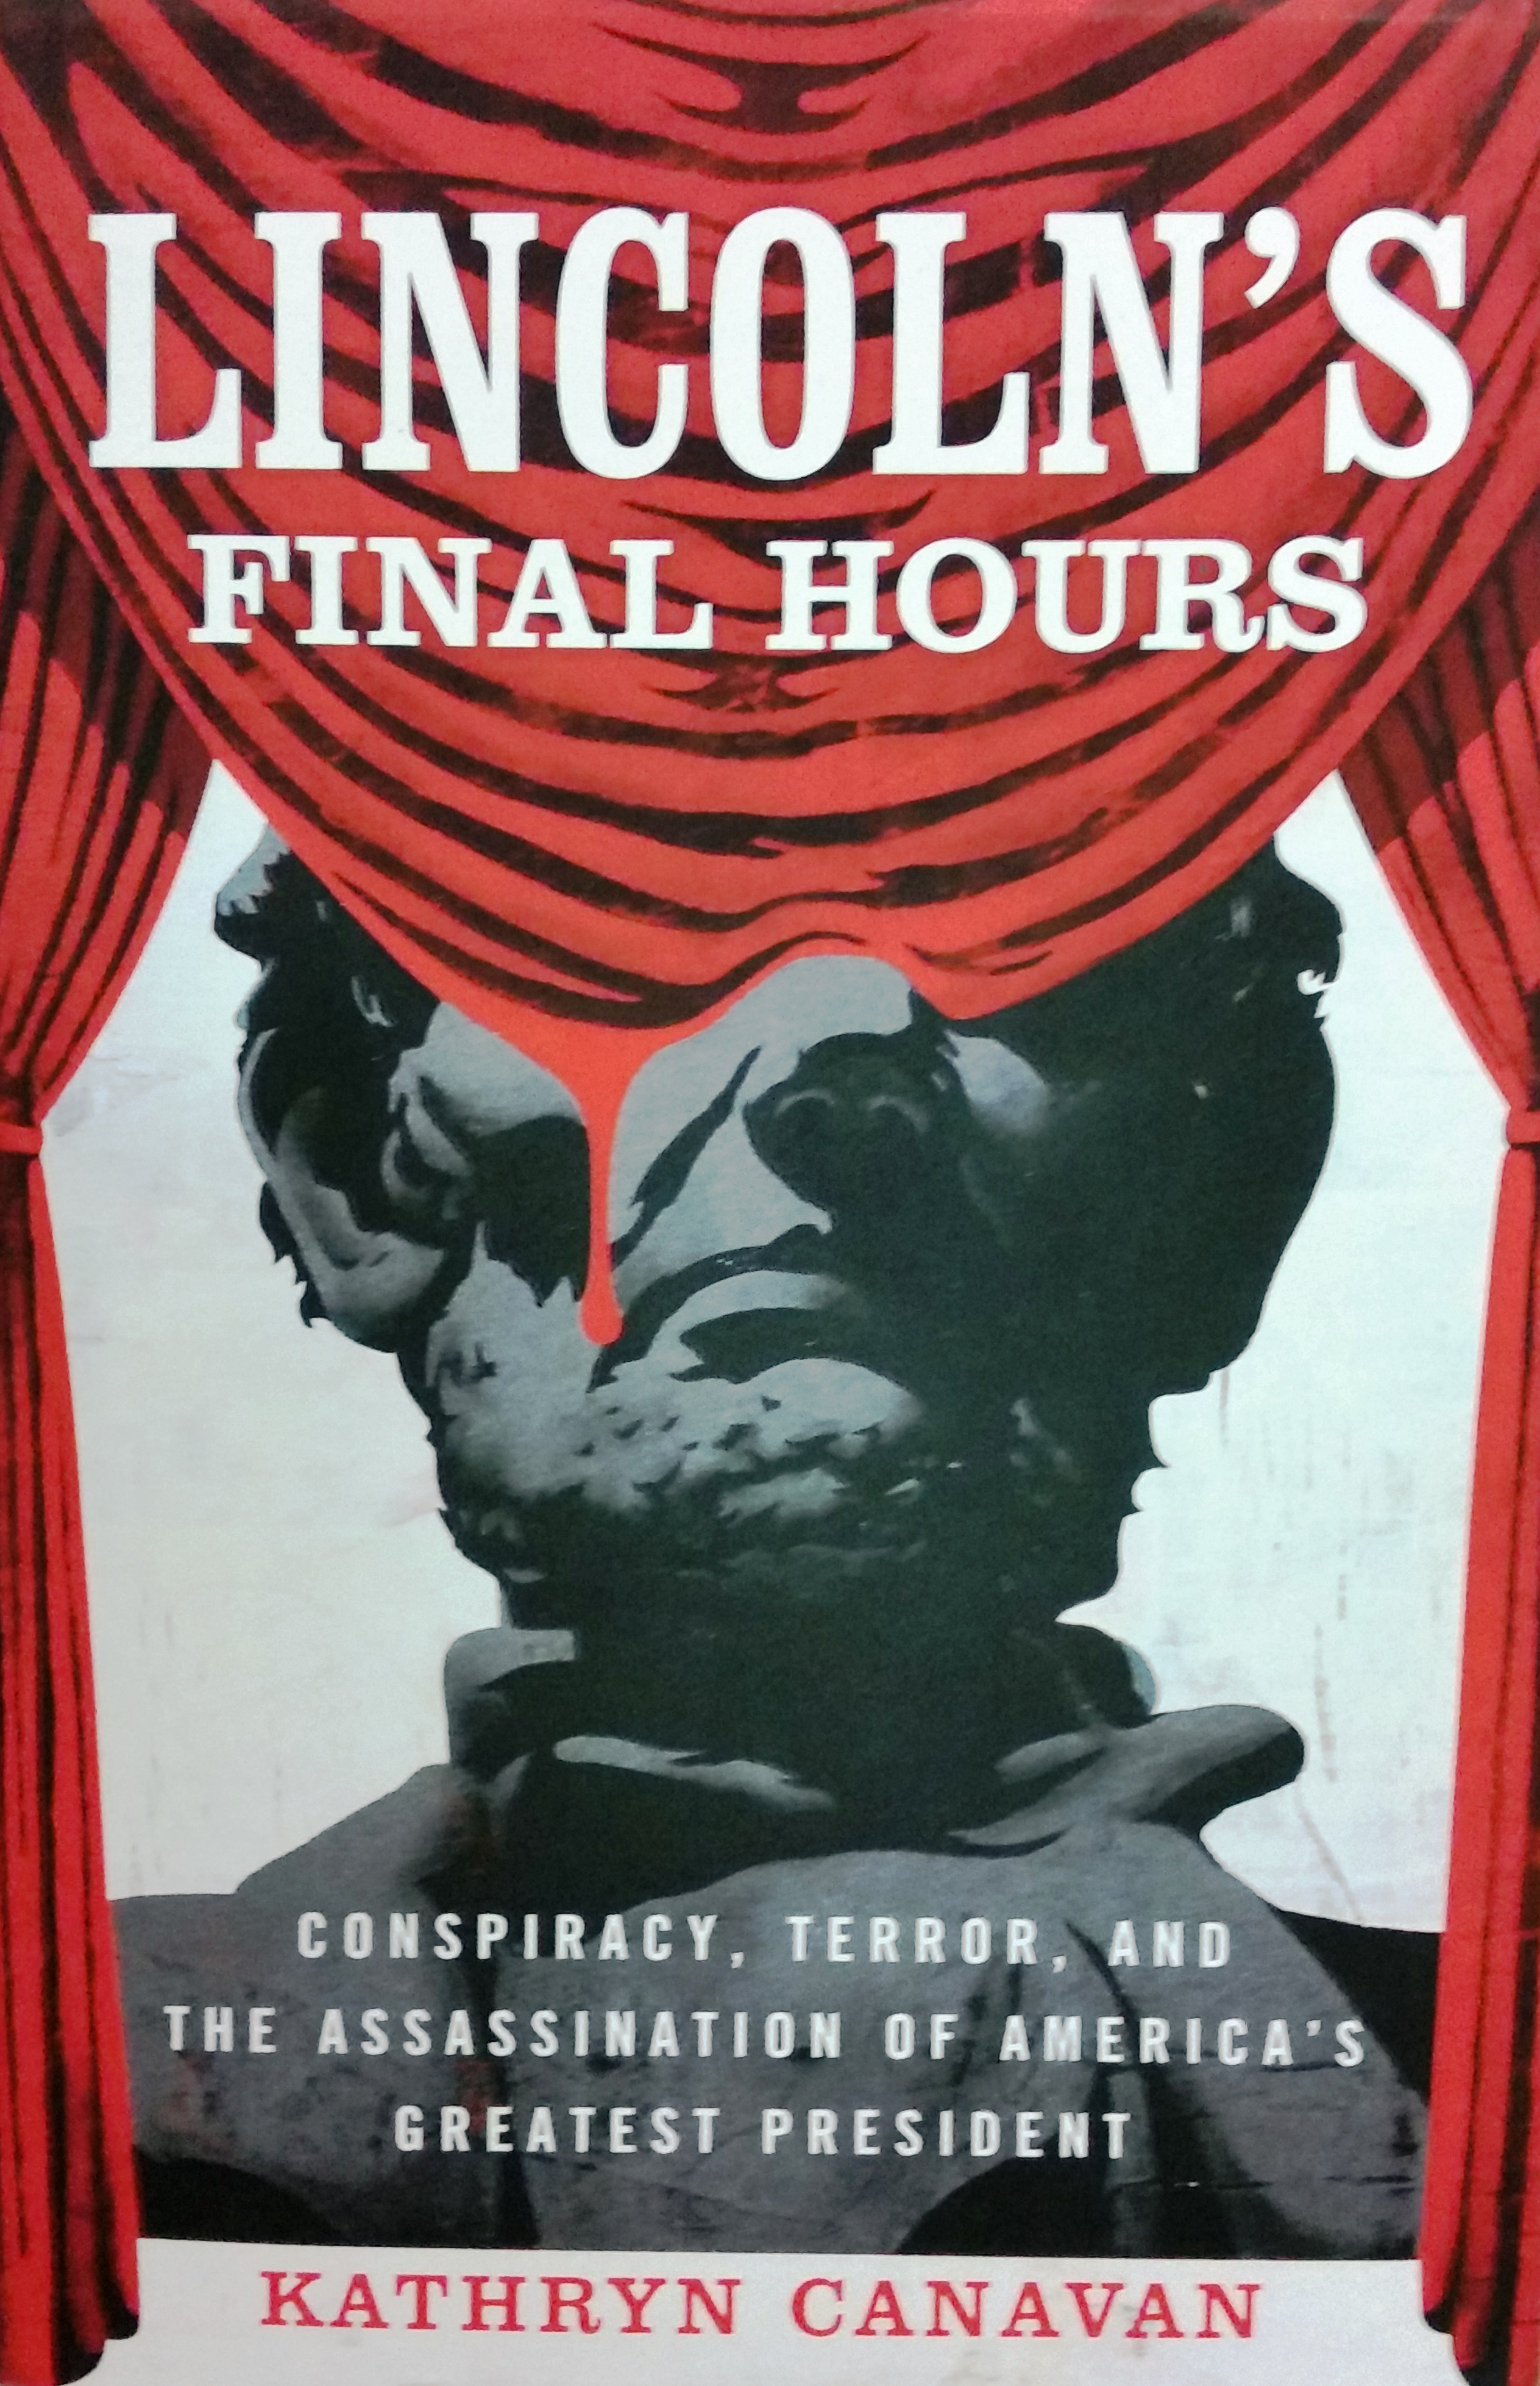 LINCOLN'S FINAL HOURS: Conspiracy, Terror, And The Assassination of America's Greatest President, by Kathryn Canavan, 2015, 233 pp., HARDCOVER Prices reflect the cost of the book PLUS S&H fee of $5.00